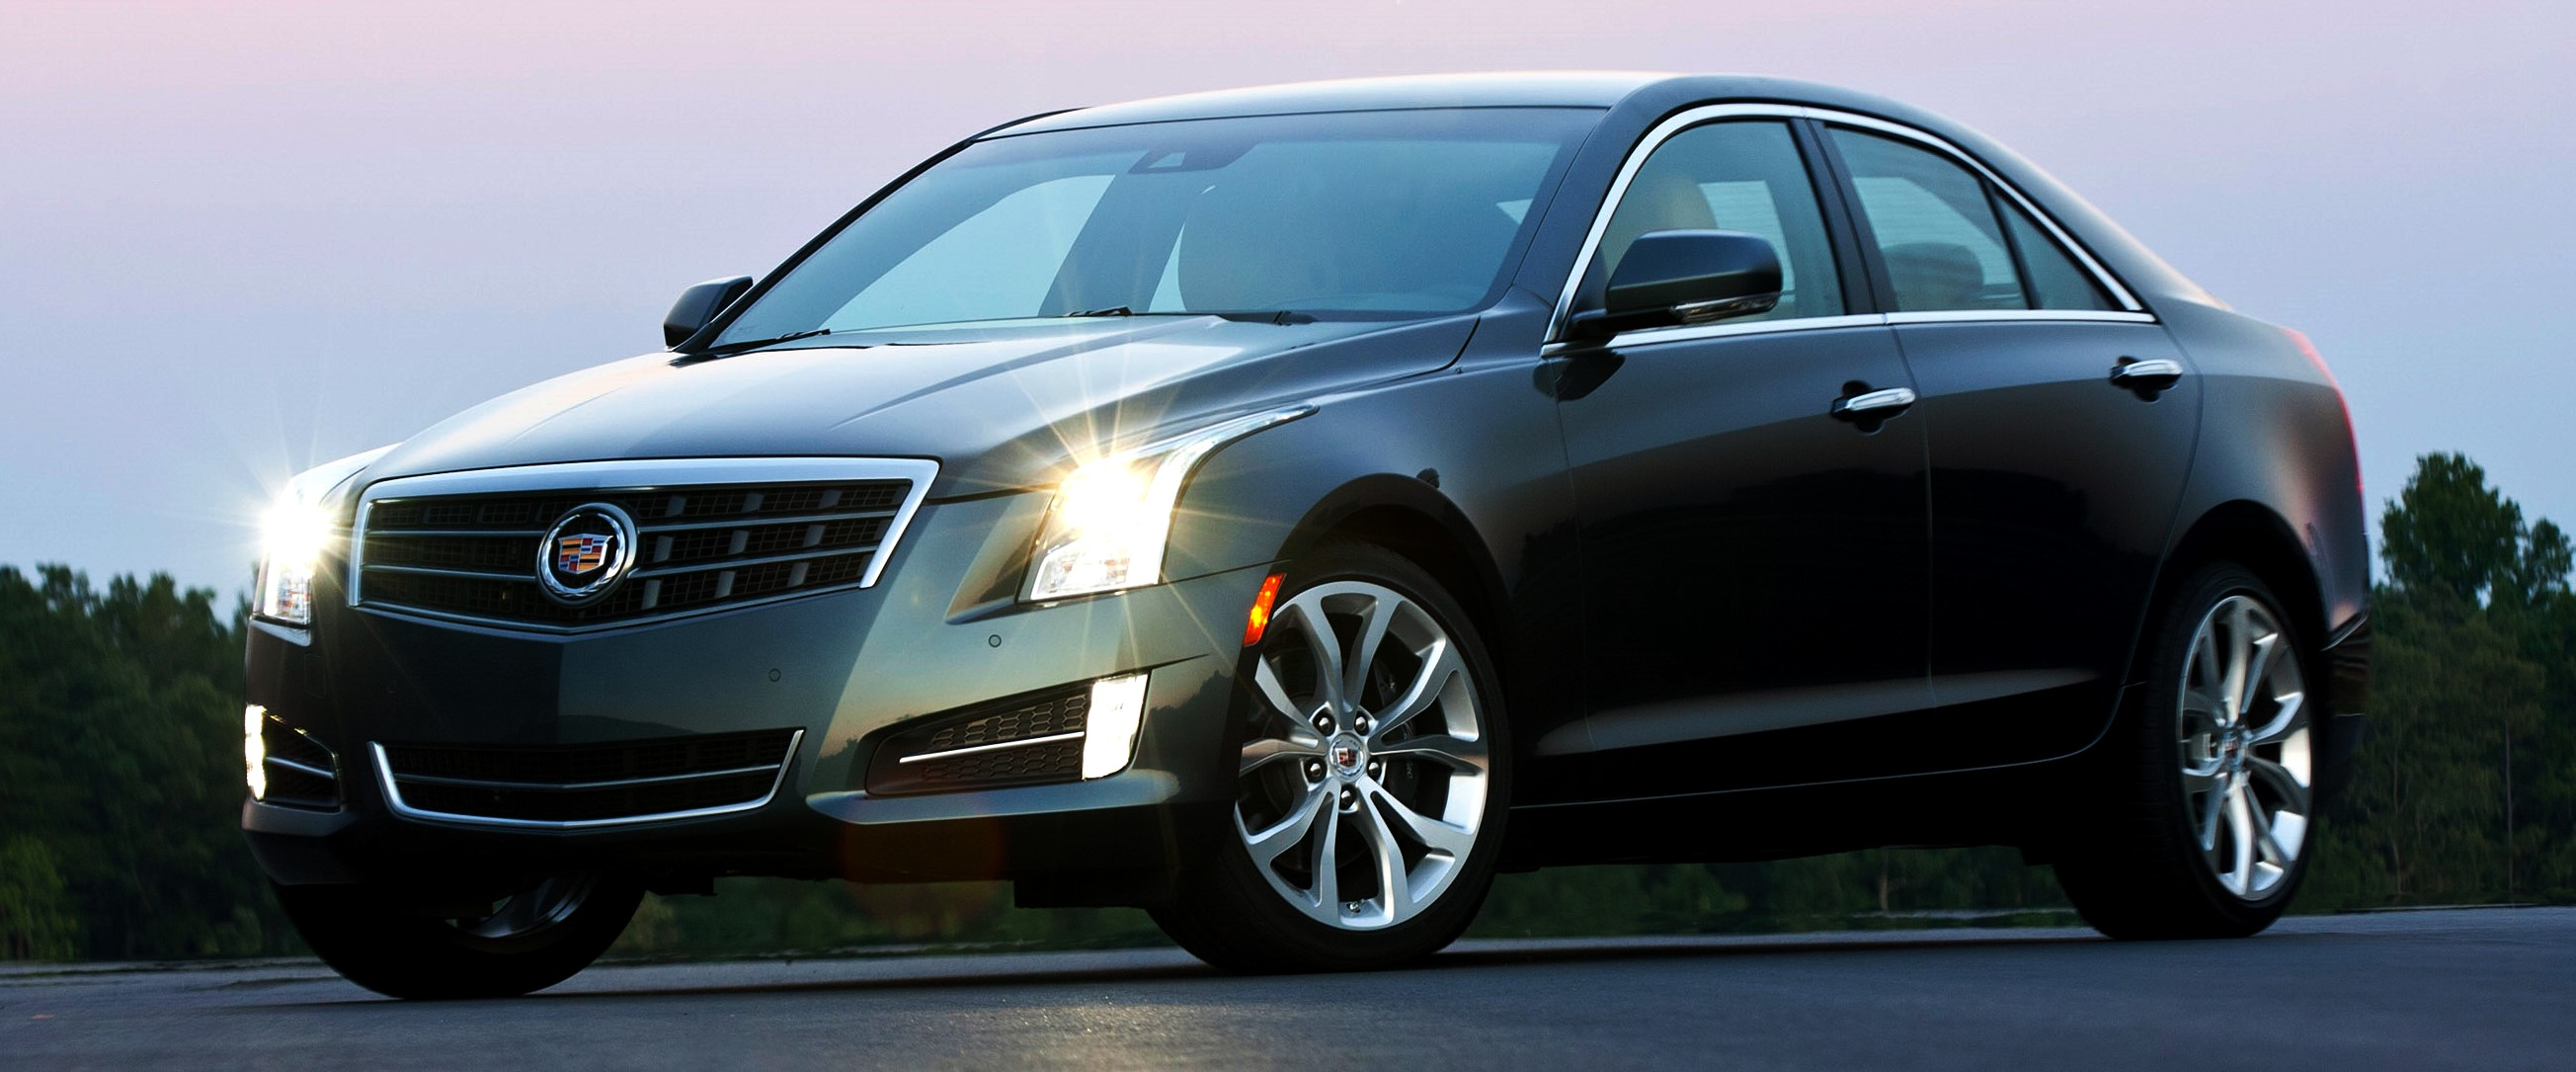 2014 cadillac ats review top speed. Black Bedroom Furniture Sets. Home Design Ideas